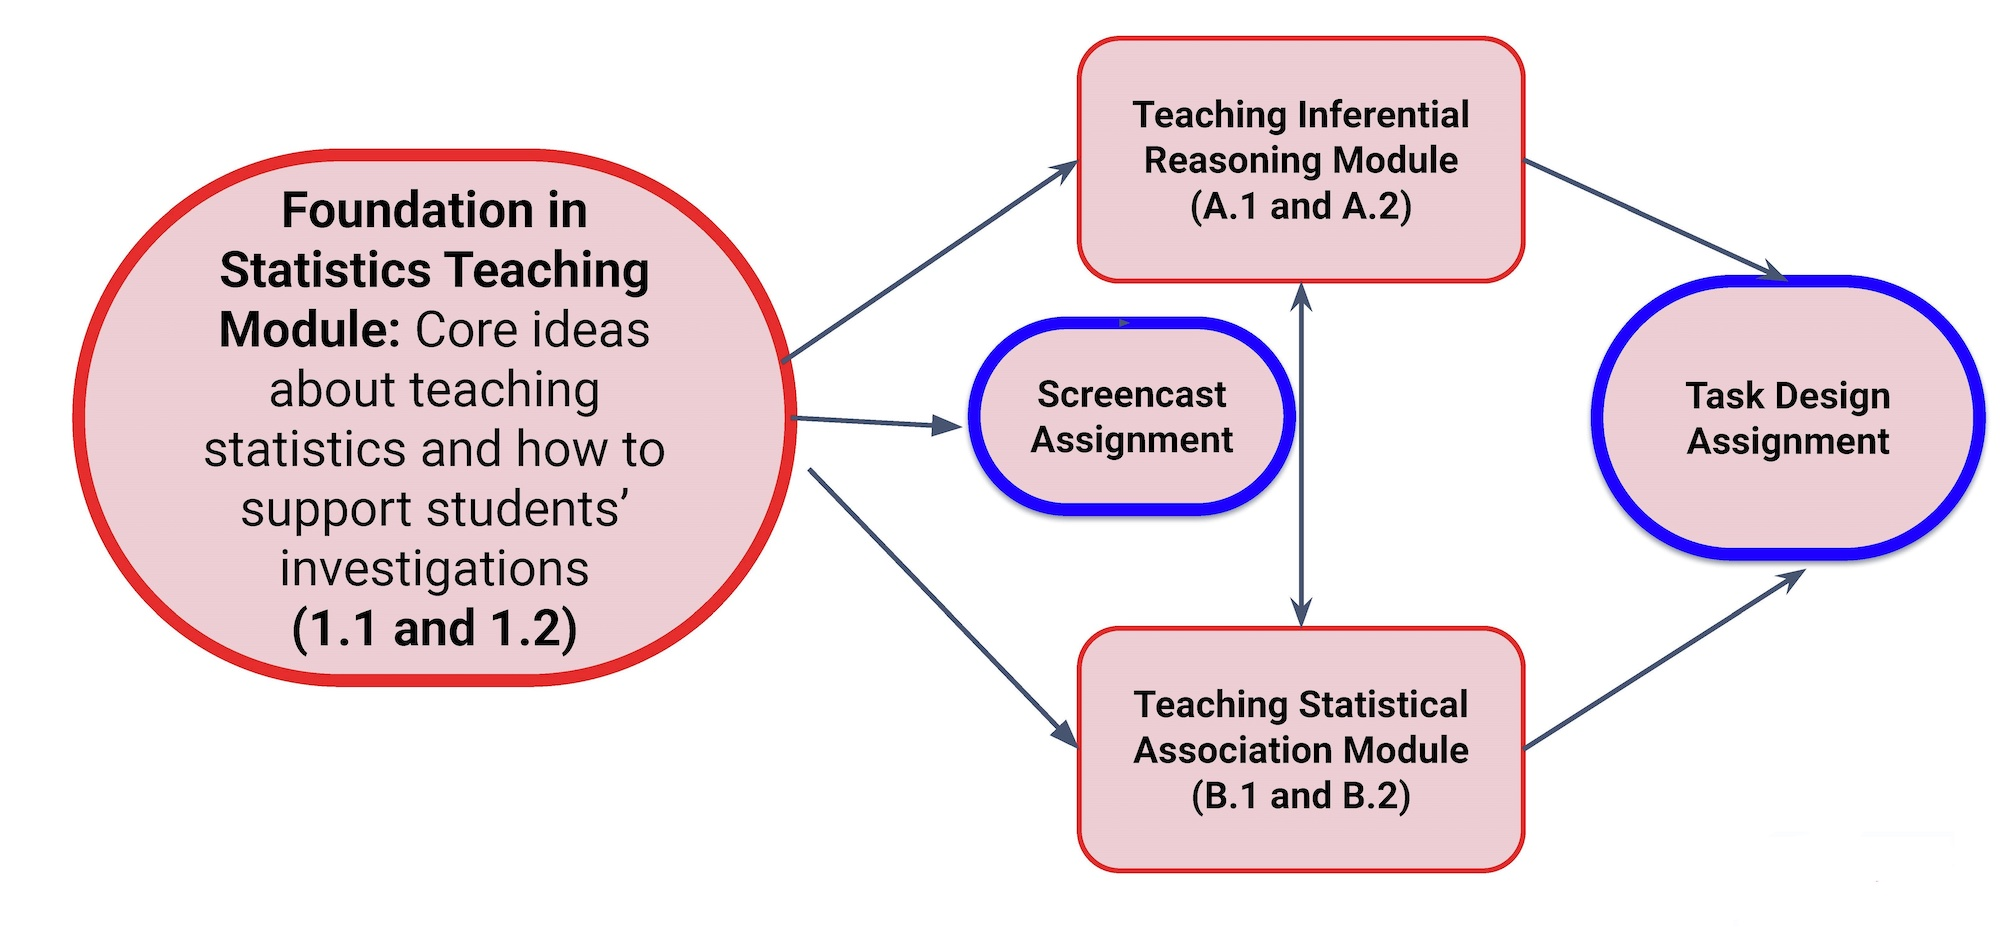 Modular approach to the ESTEEM project. The Foundation in Teaching Statistics module leadsd to a screencast assignment as well as Module 1 (Teaching Infrarential Reasoning) and Module 2 (Teaching Statistical Associations. Once these modules are completed, they lead to a task design assignment.